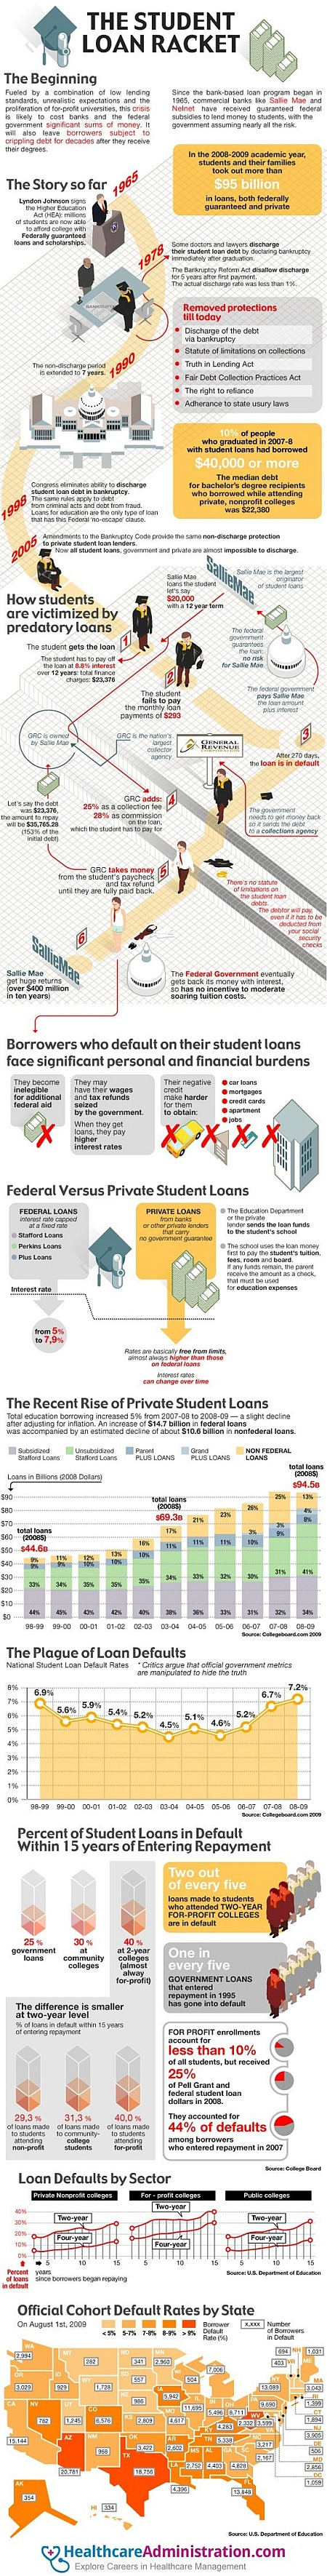 Exposing the Student Loan Racket in America